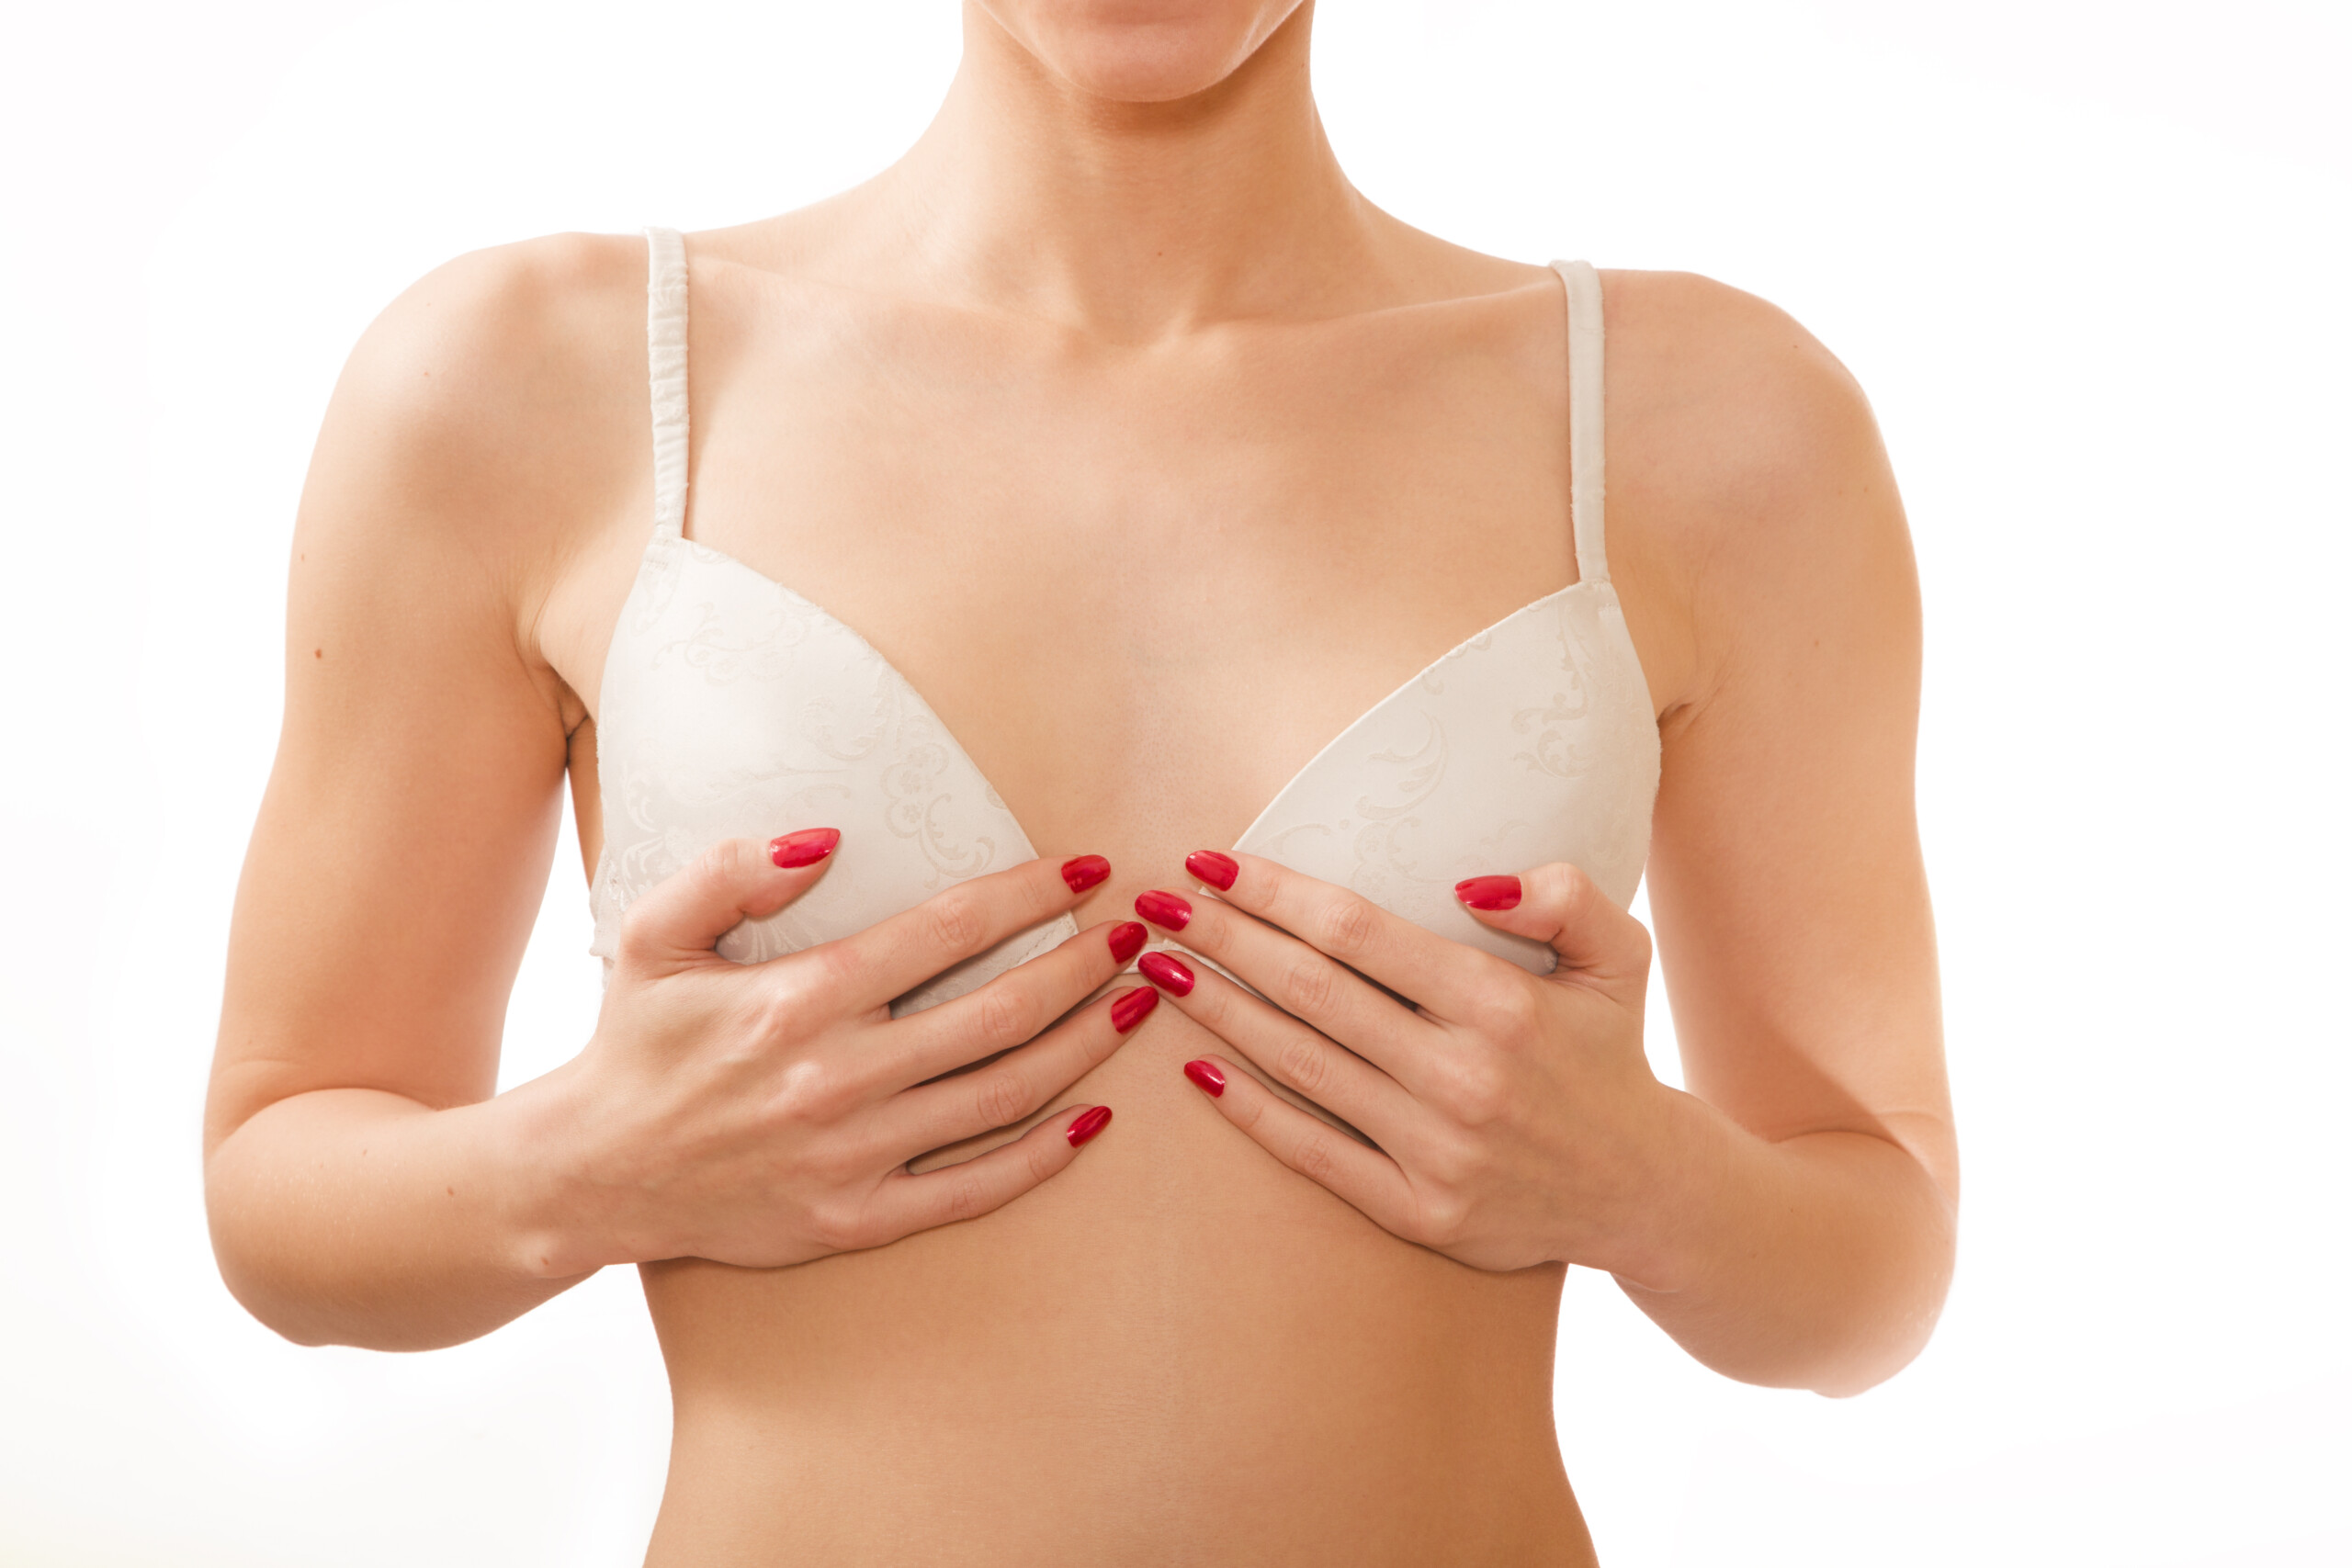 How Often Does Non-Inflammatory Breast Cancer Cause Pain?